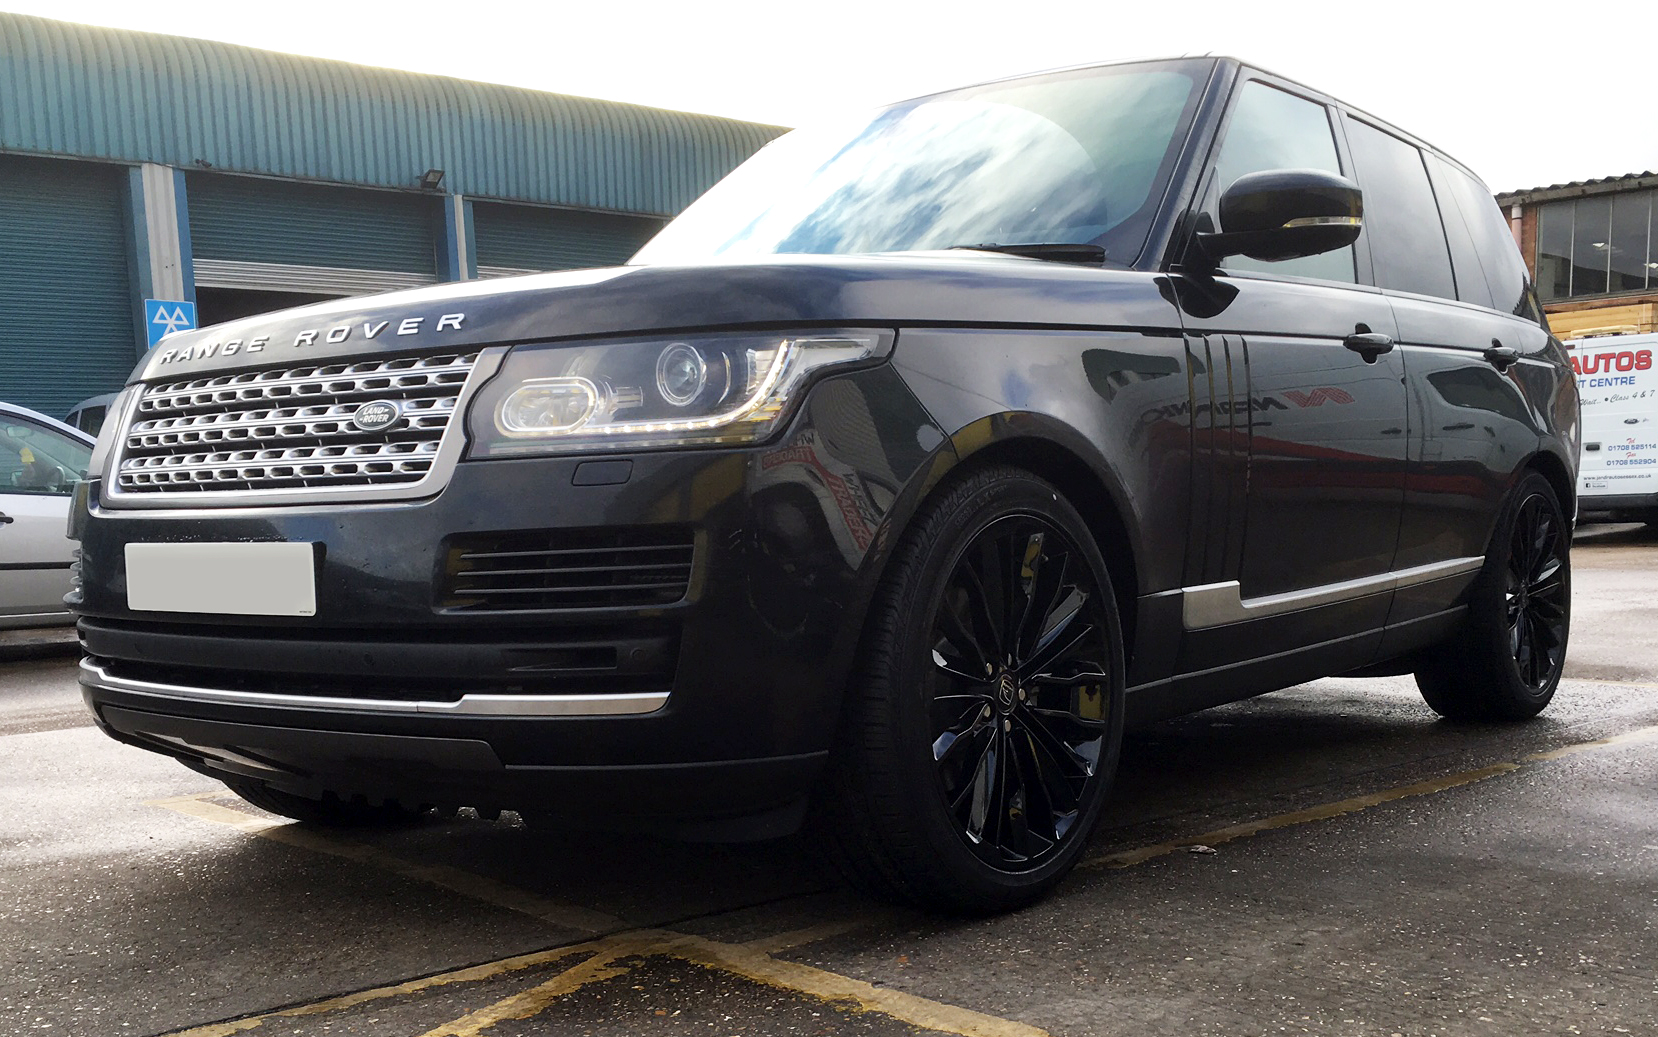 Black Range Rover Vogue on HAWKE Harrier wheels in Black colour finish